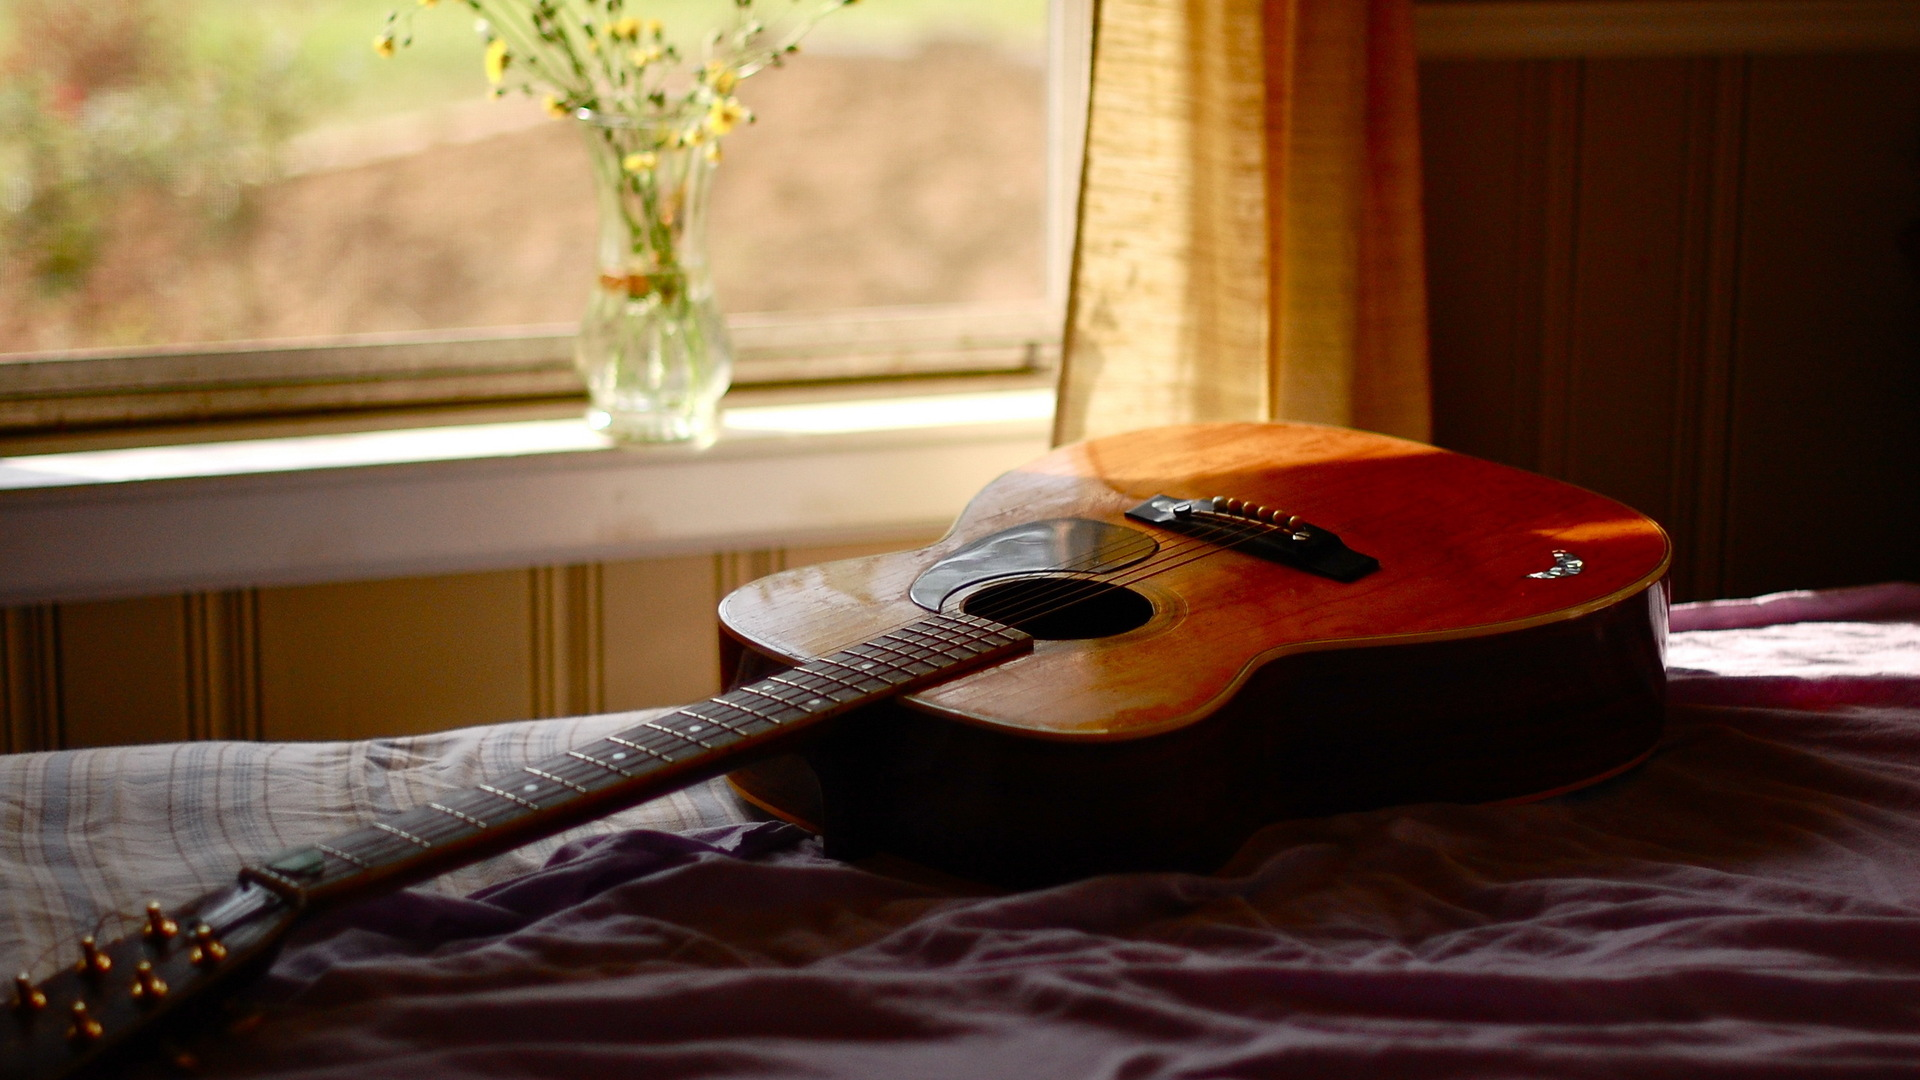 Acoustic Guitar   Wallpaper High Definition High Quality Widescreen 1920x1080